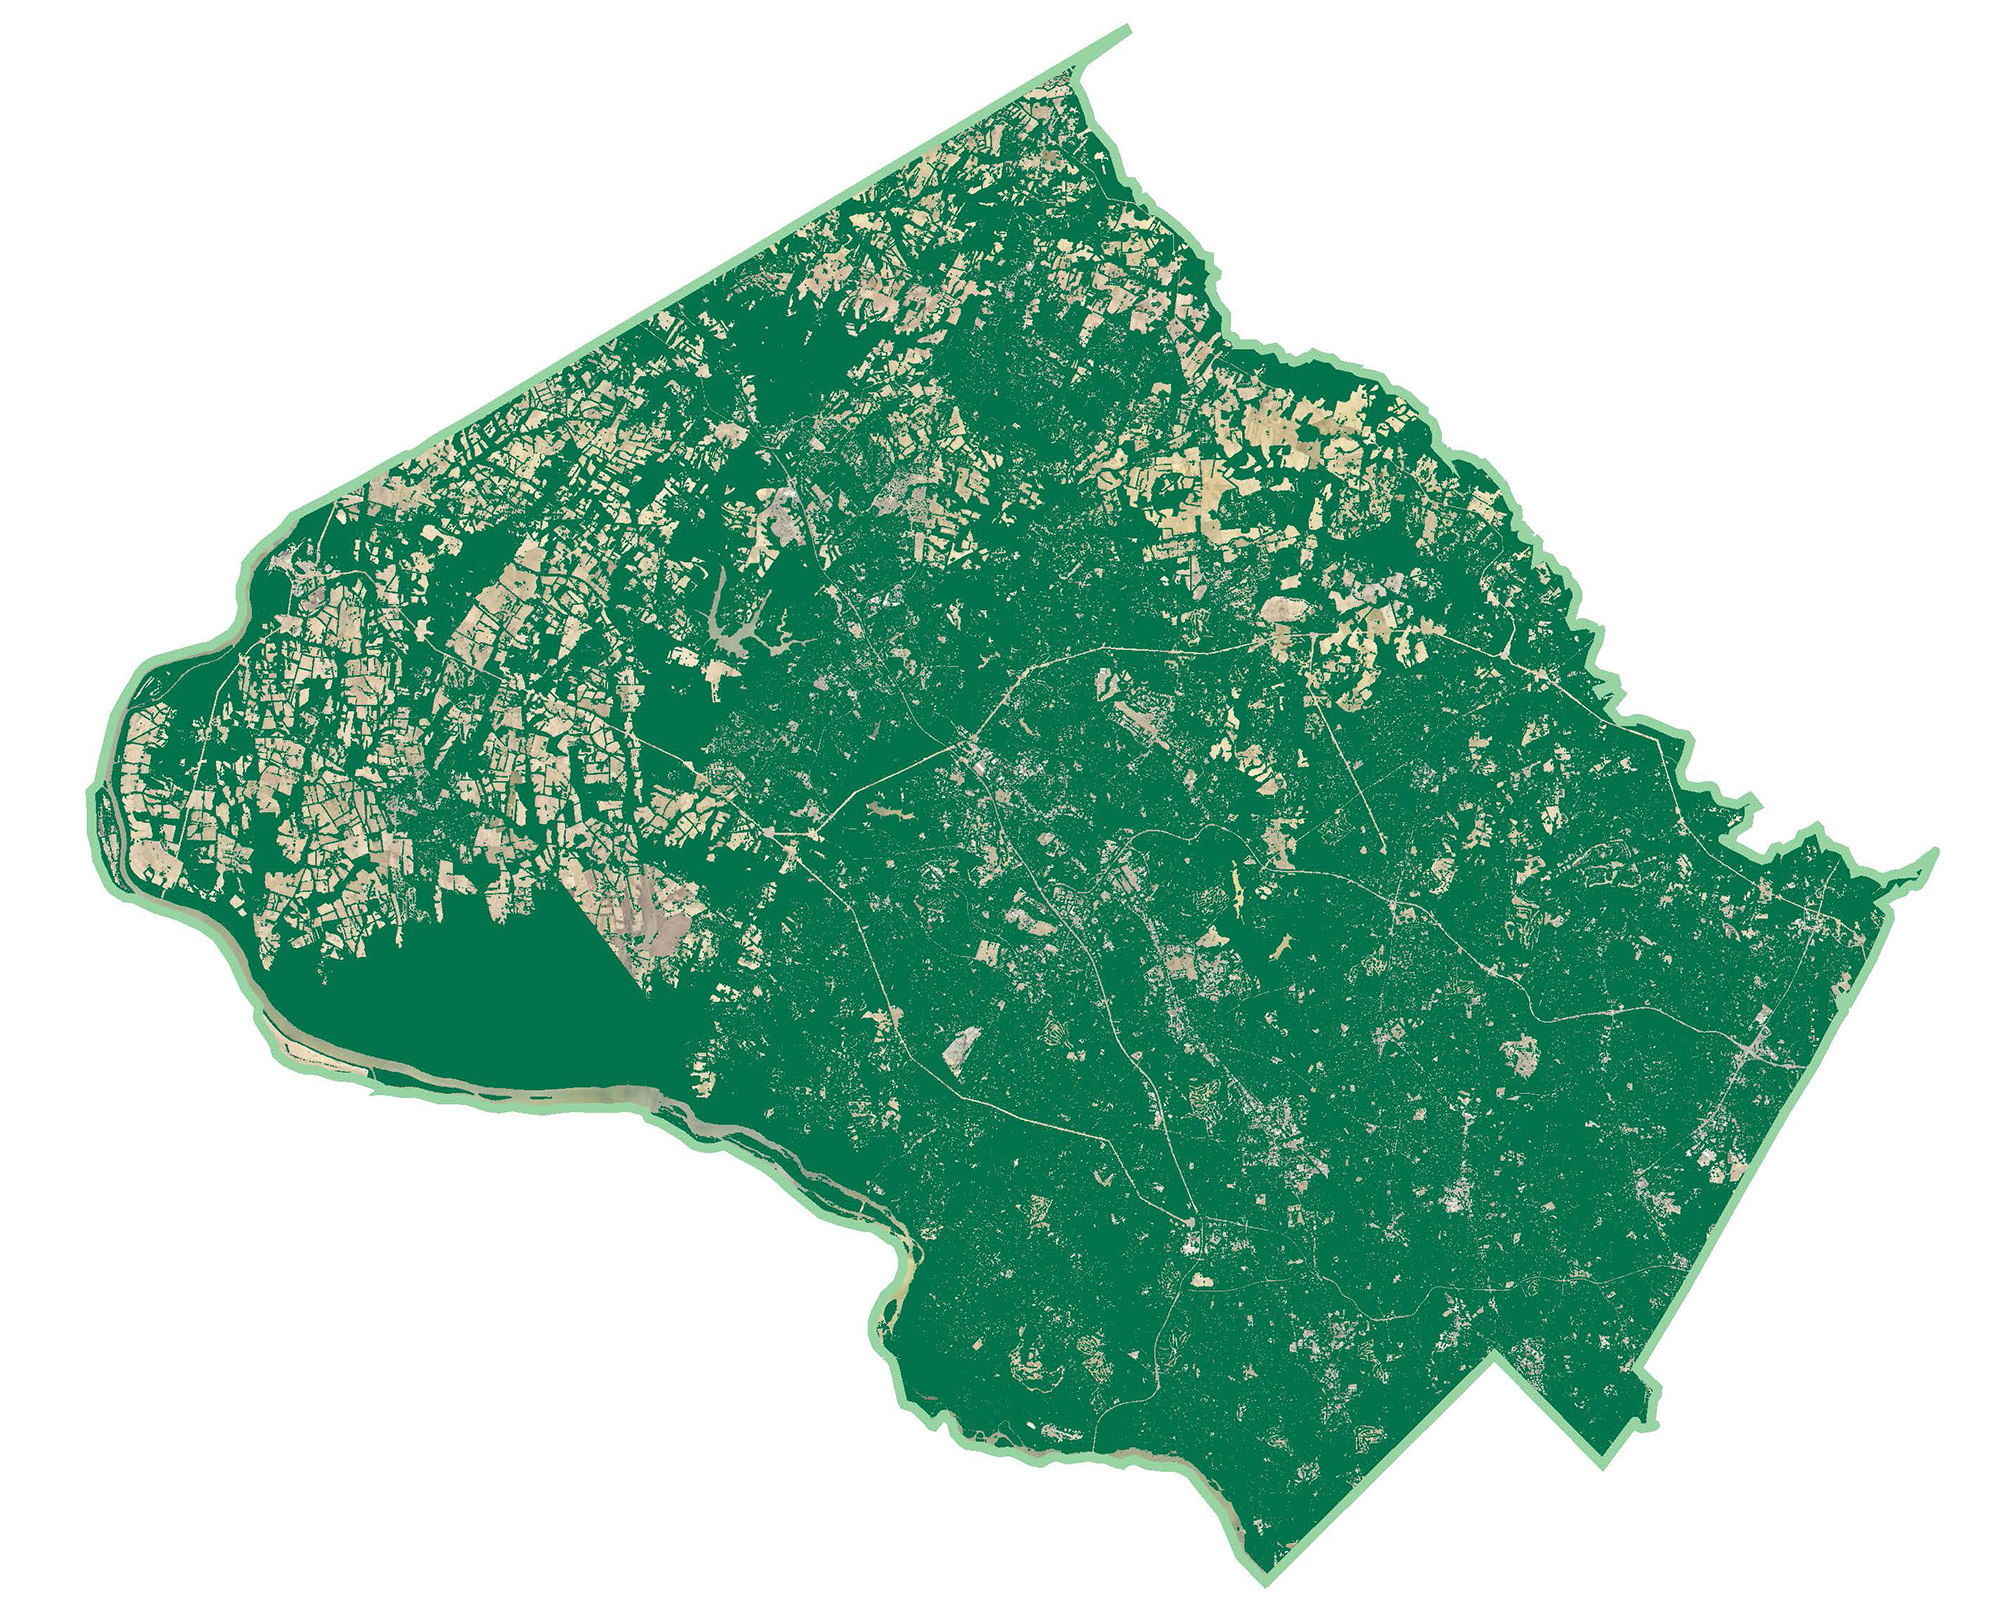 Map of Montgomery County showing 46% of the county is covered by tree canopy